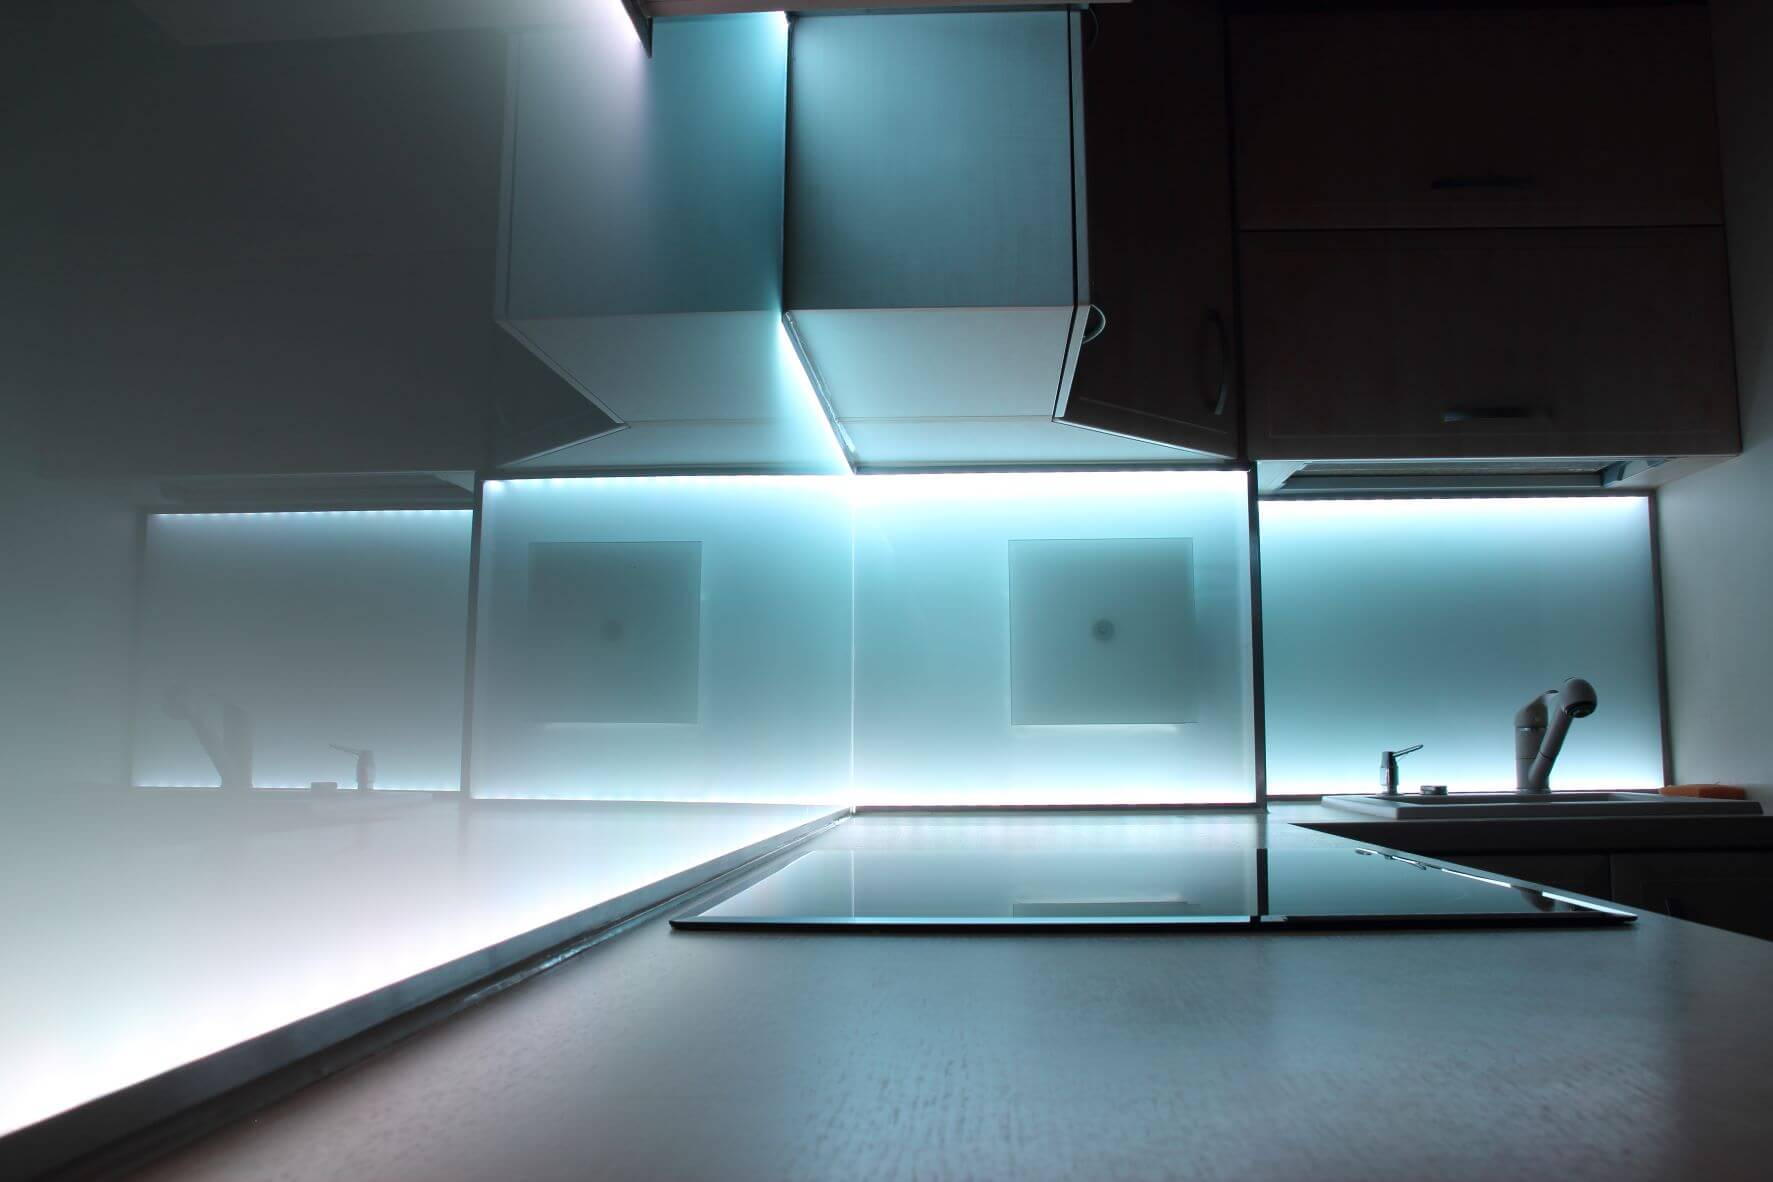 stylish night shot of glossy cabinets with luminescent LED lights giving sexy glow